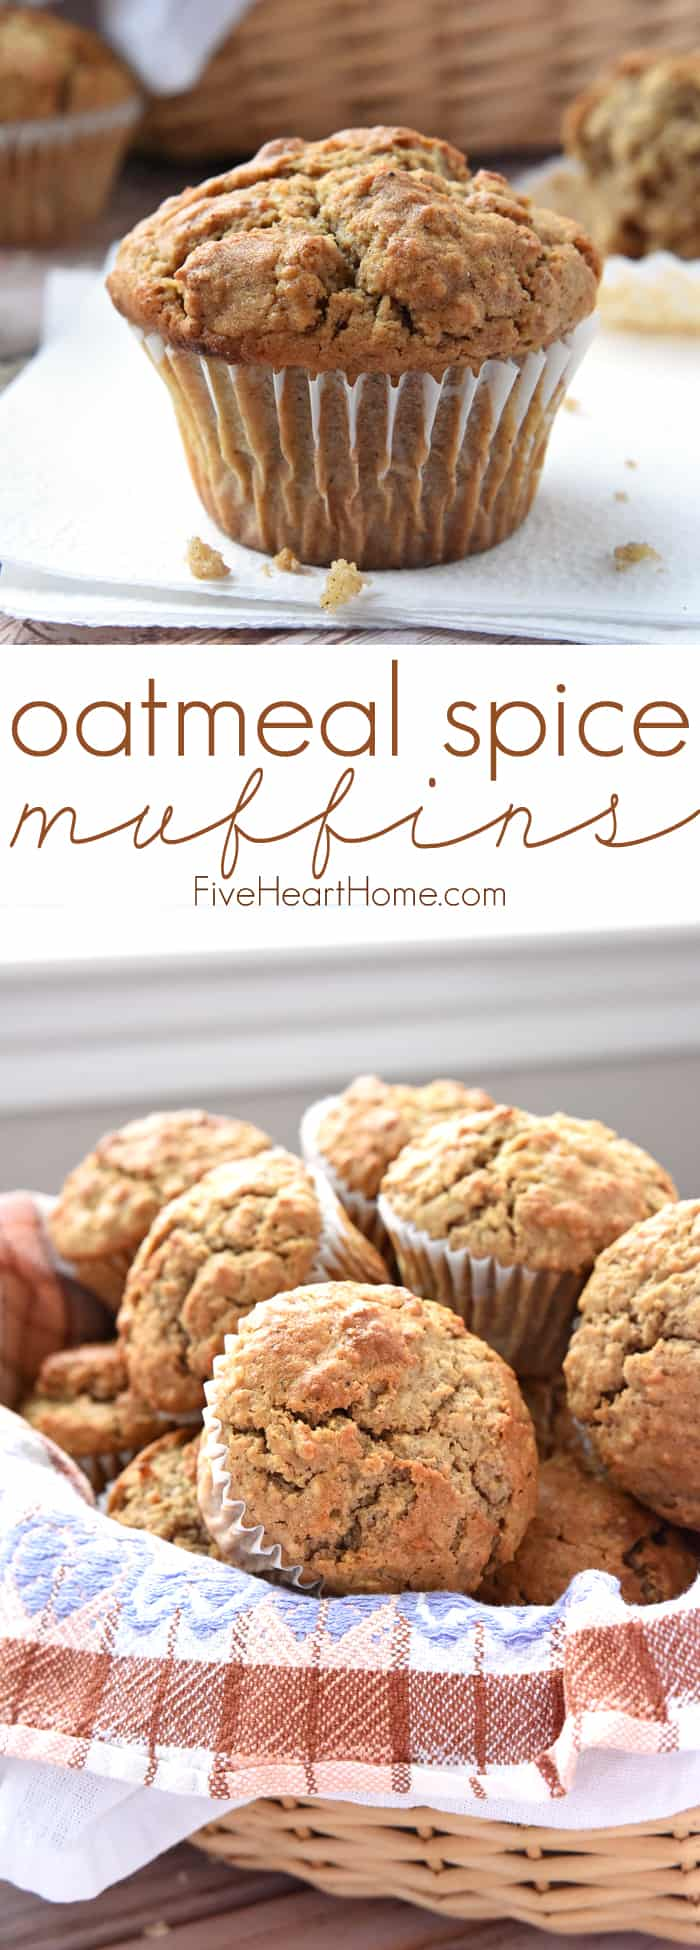 Spiced Oatmeal Muffins ~ perfectly flavored with crunchy tops and pillowy centers, these muffins are a wholesome, delicious breakfast on-the-go or anytime snack! | FiveHeartHome.com